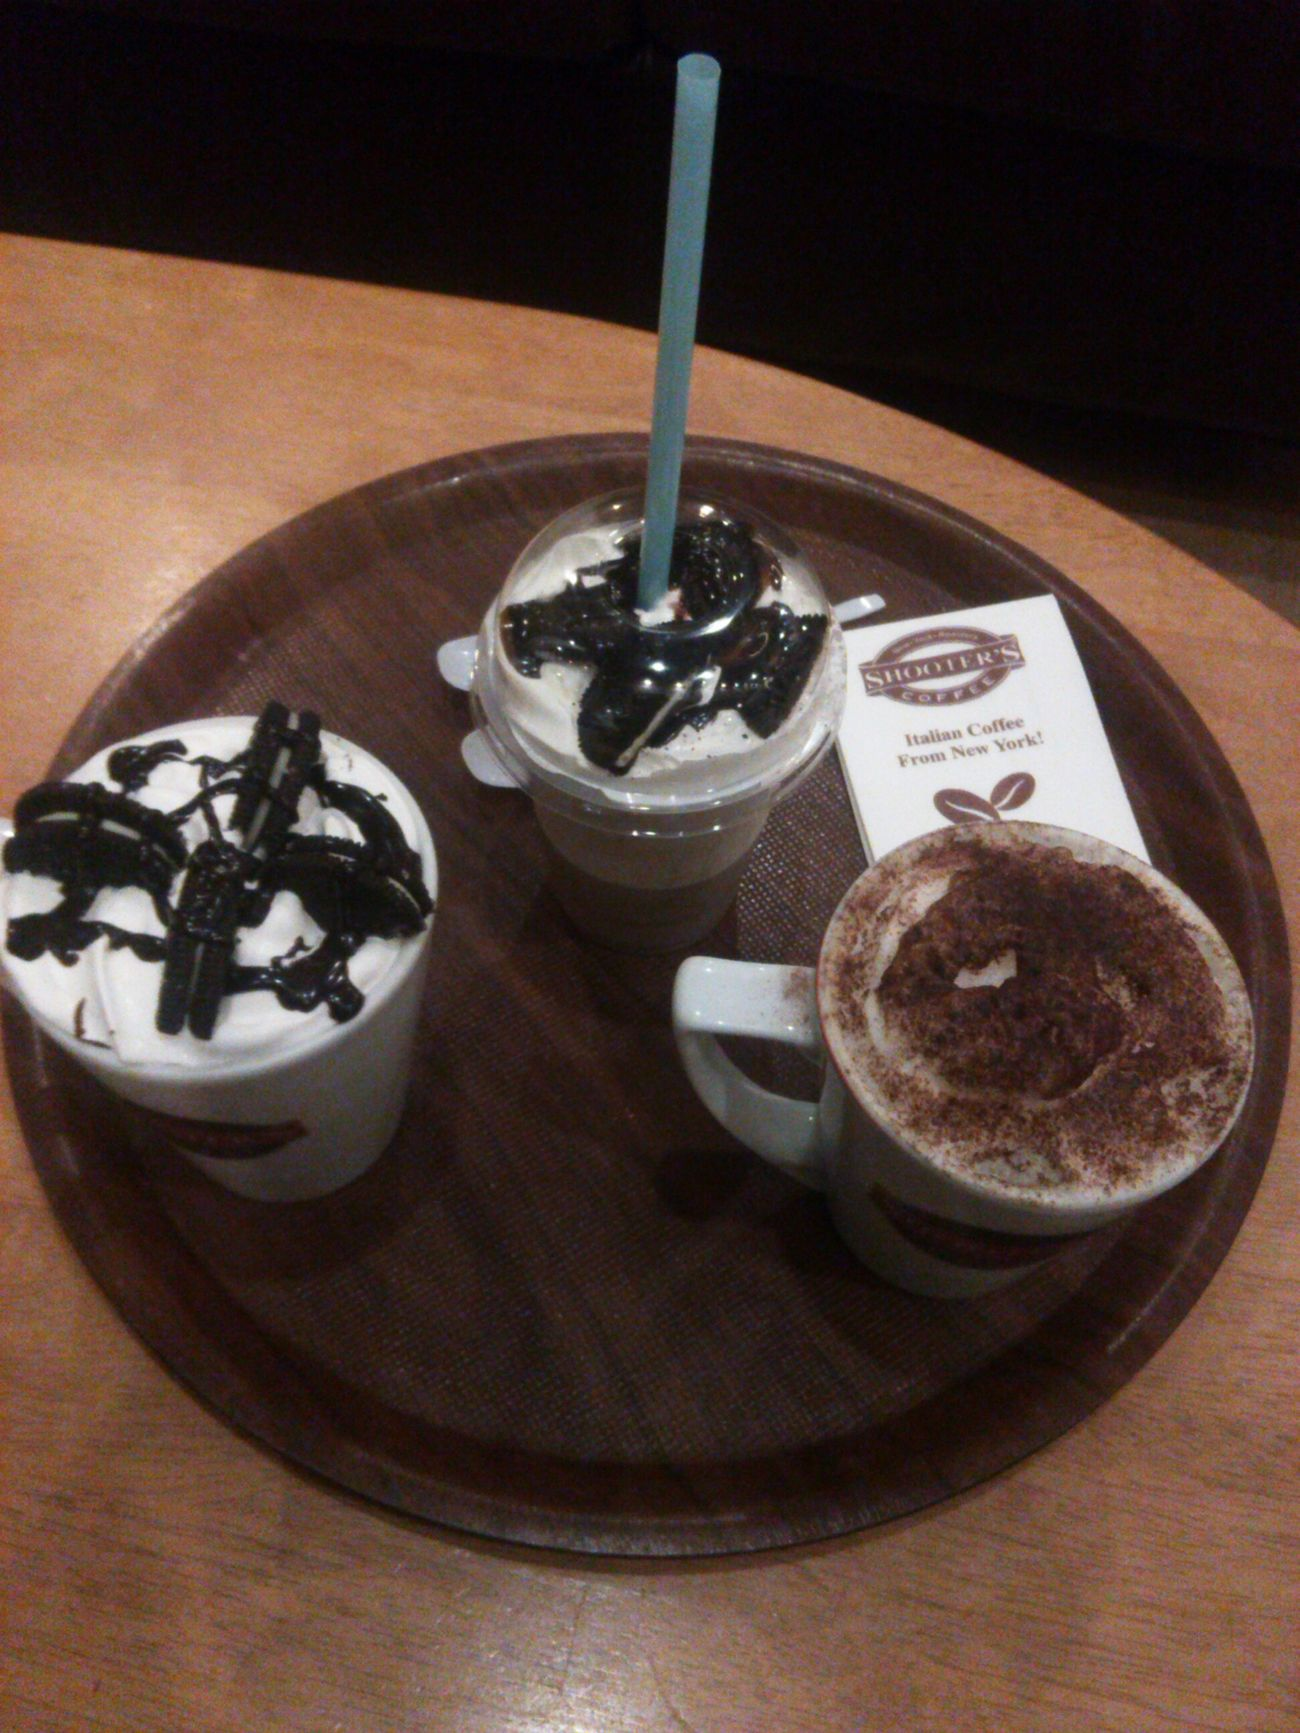 Happy Times ❤ Yesterday Night Two Cookiesandcream With Oreo and Cappucino Drinking Coffee Chilling ✌ ❤❤